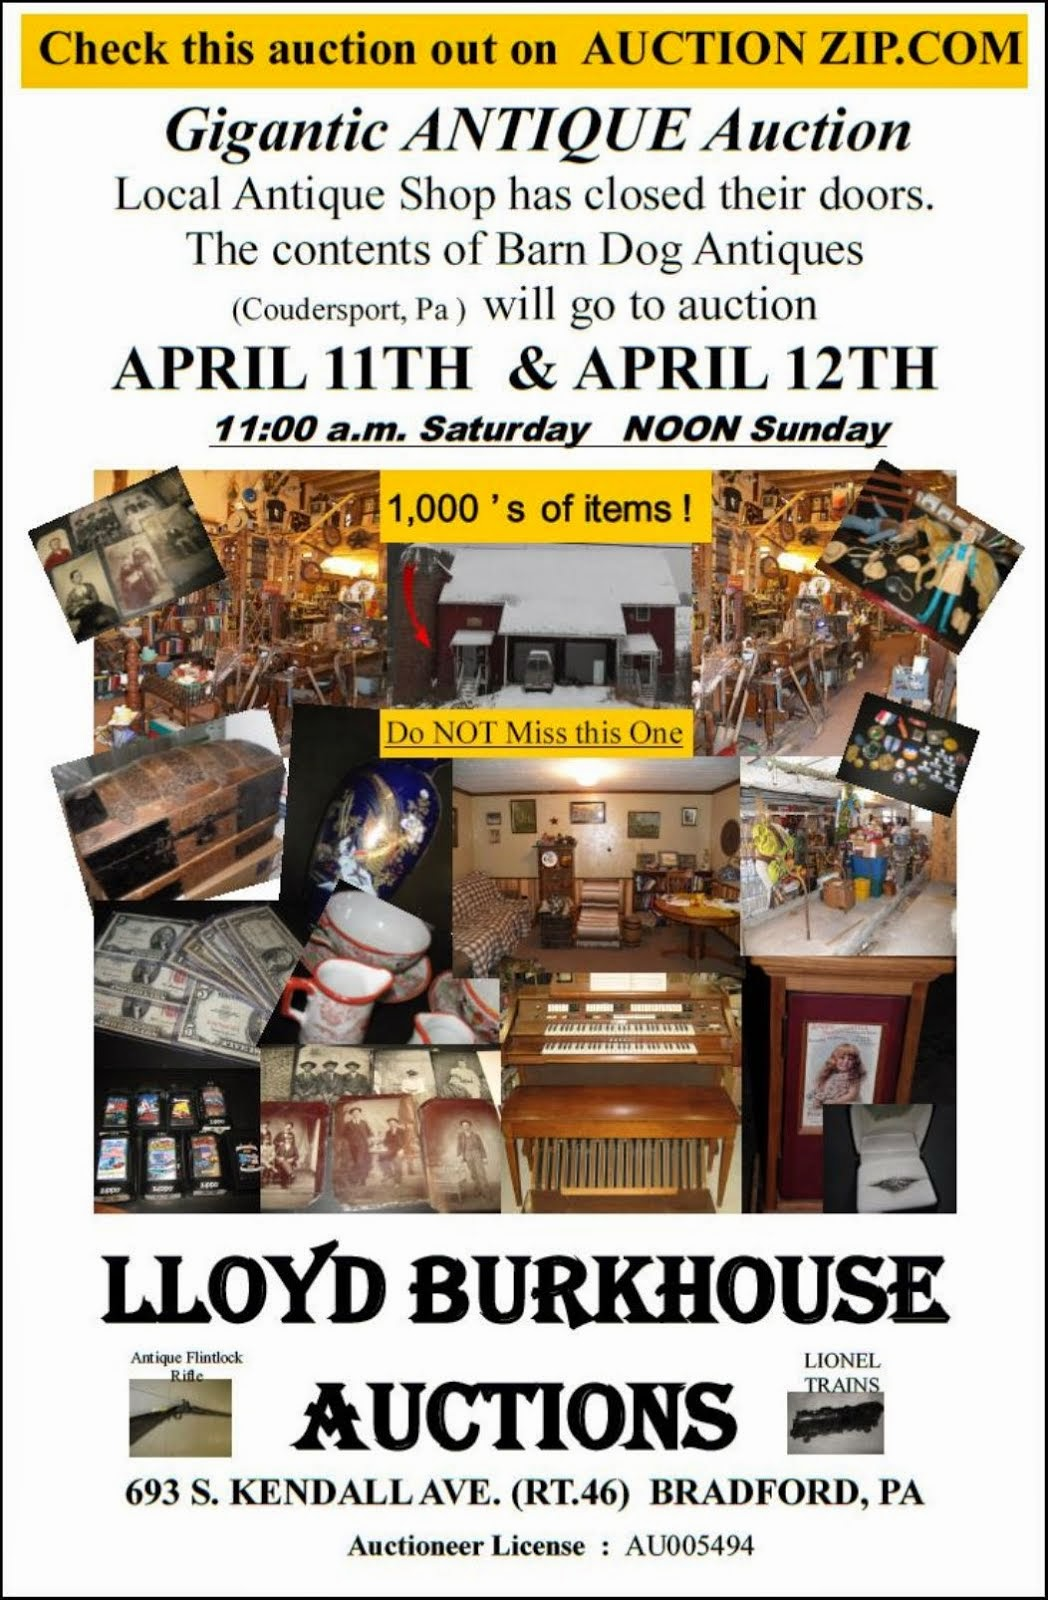 Lloyd Burkhouse Auctions